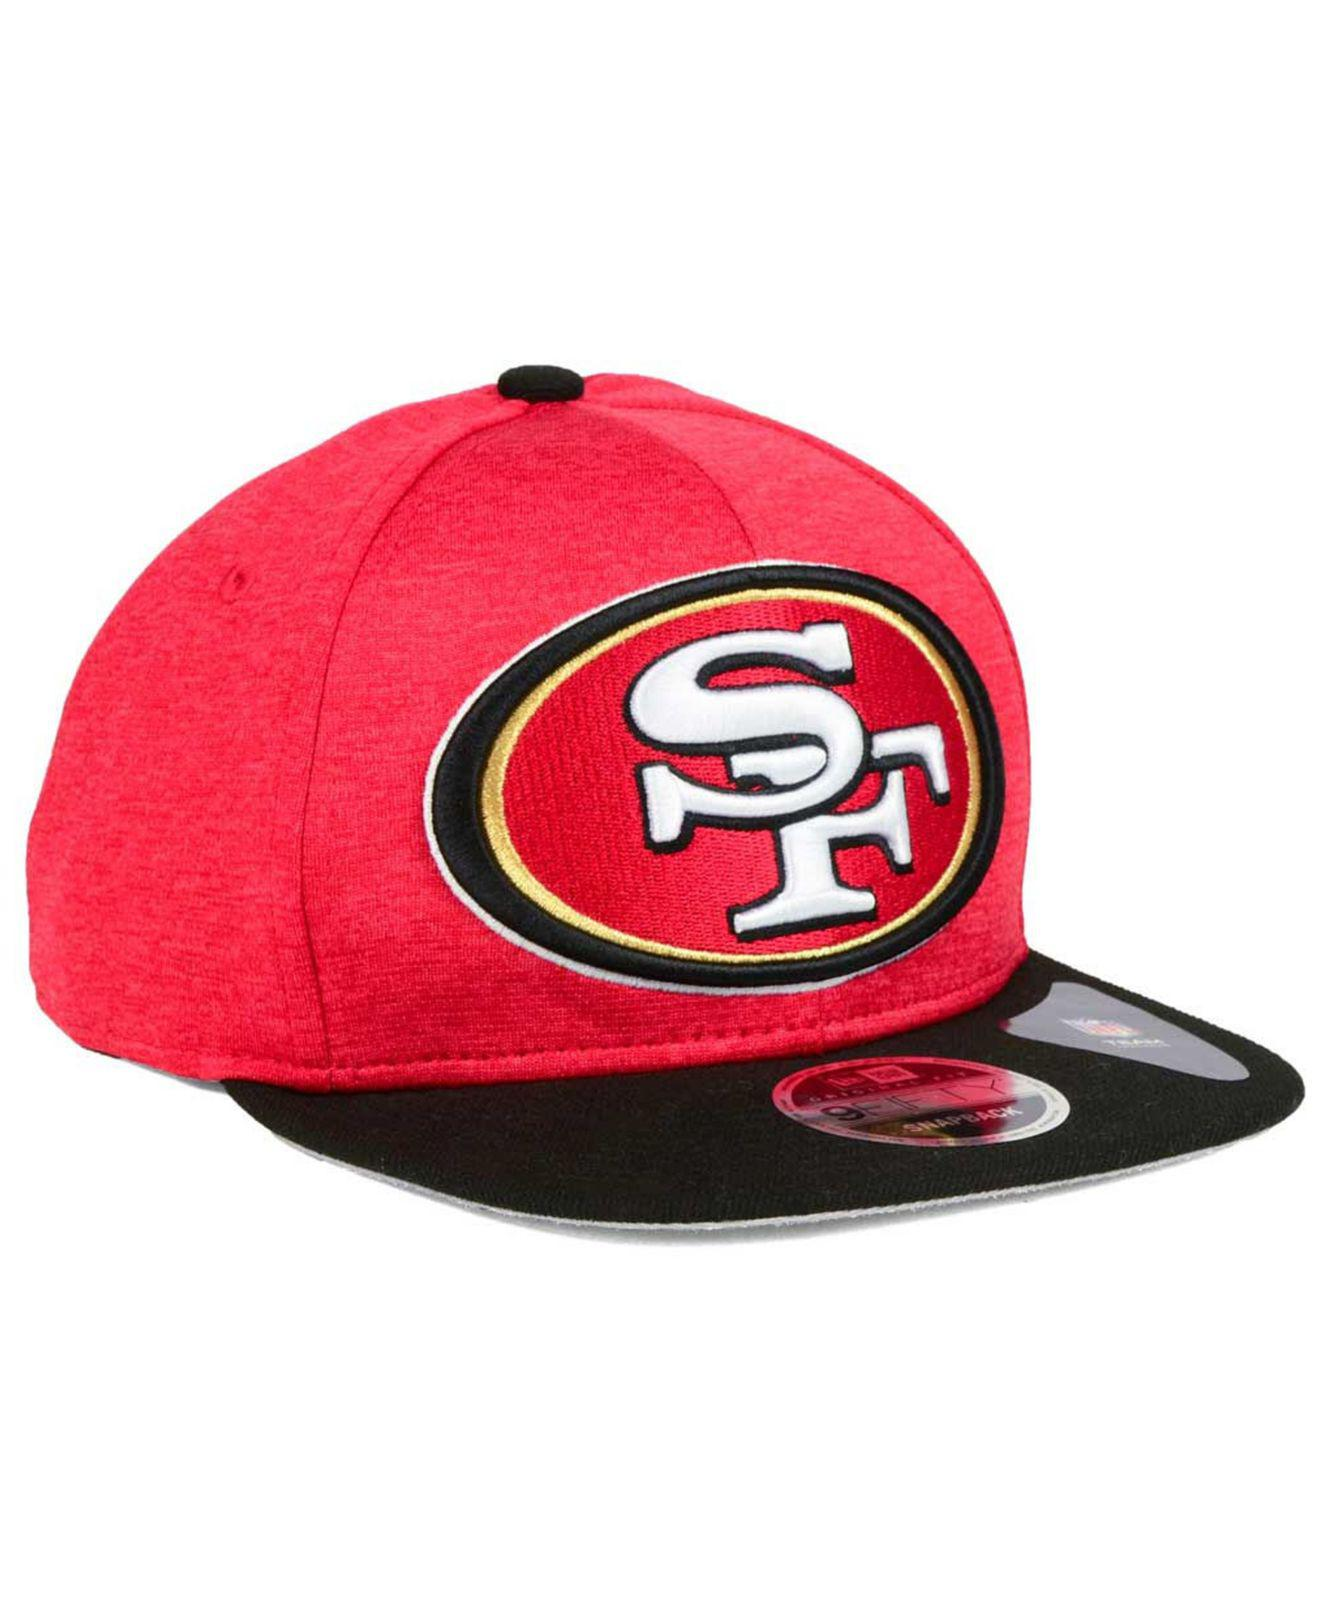 4747251e0c9 Lyst - KTZ Heather Huge 9fifty Snapback Cap in Red for Men